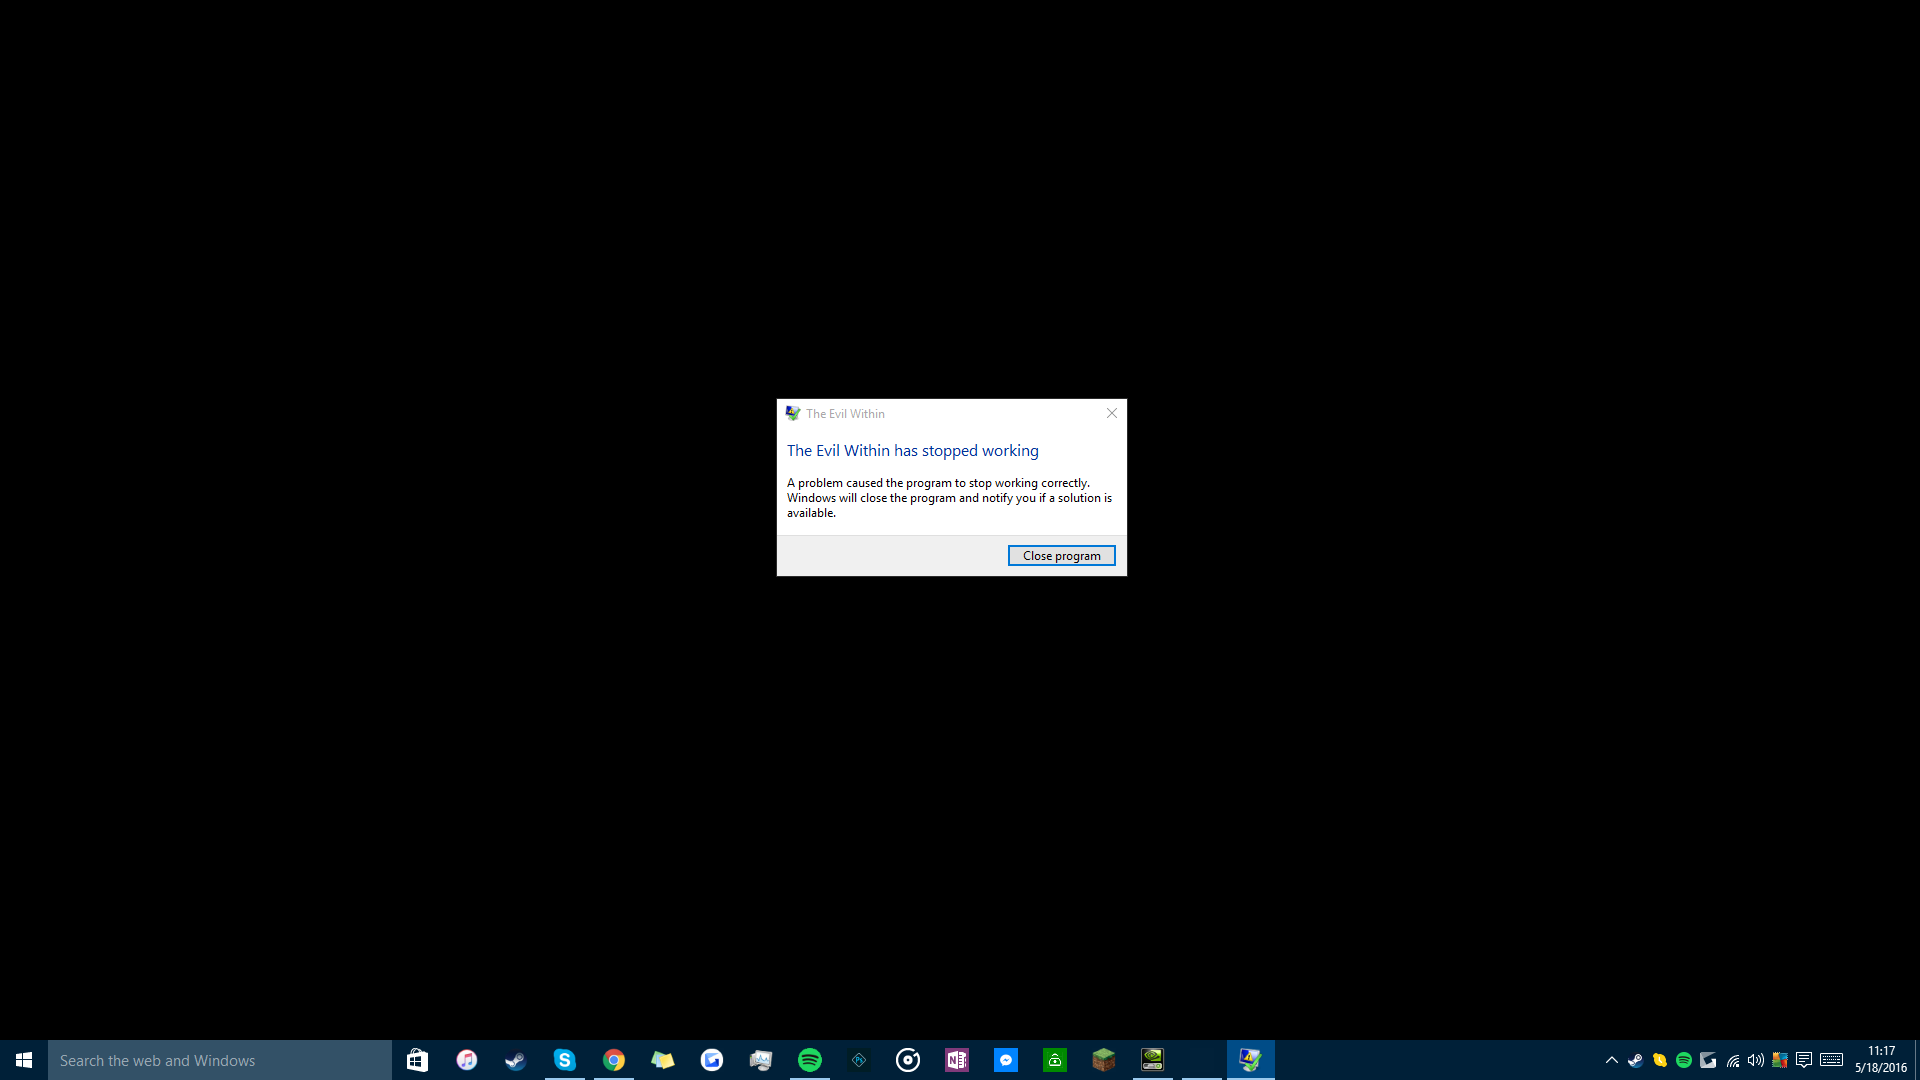 The Evil Within(PC) crashing on startup | TechPowerUp Forums